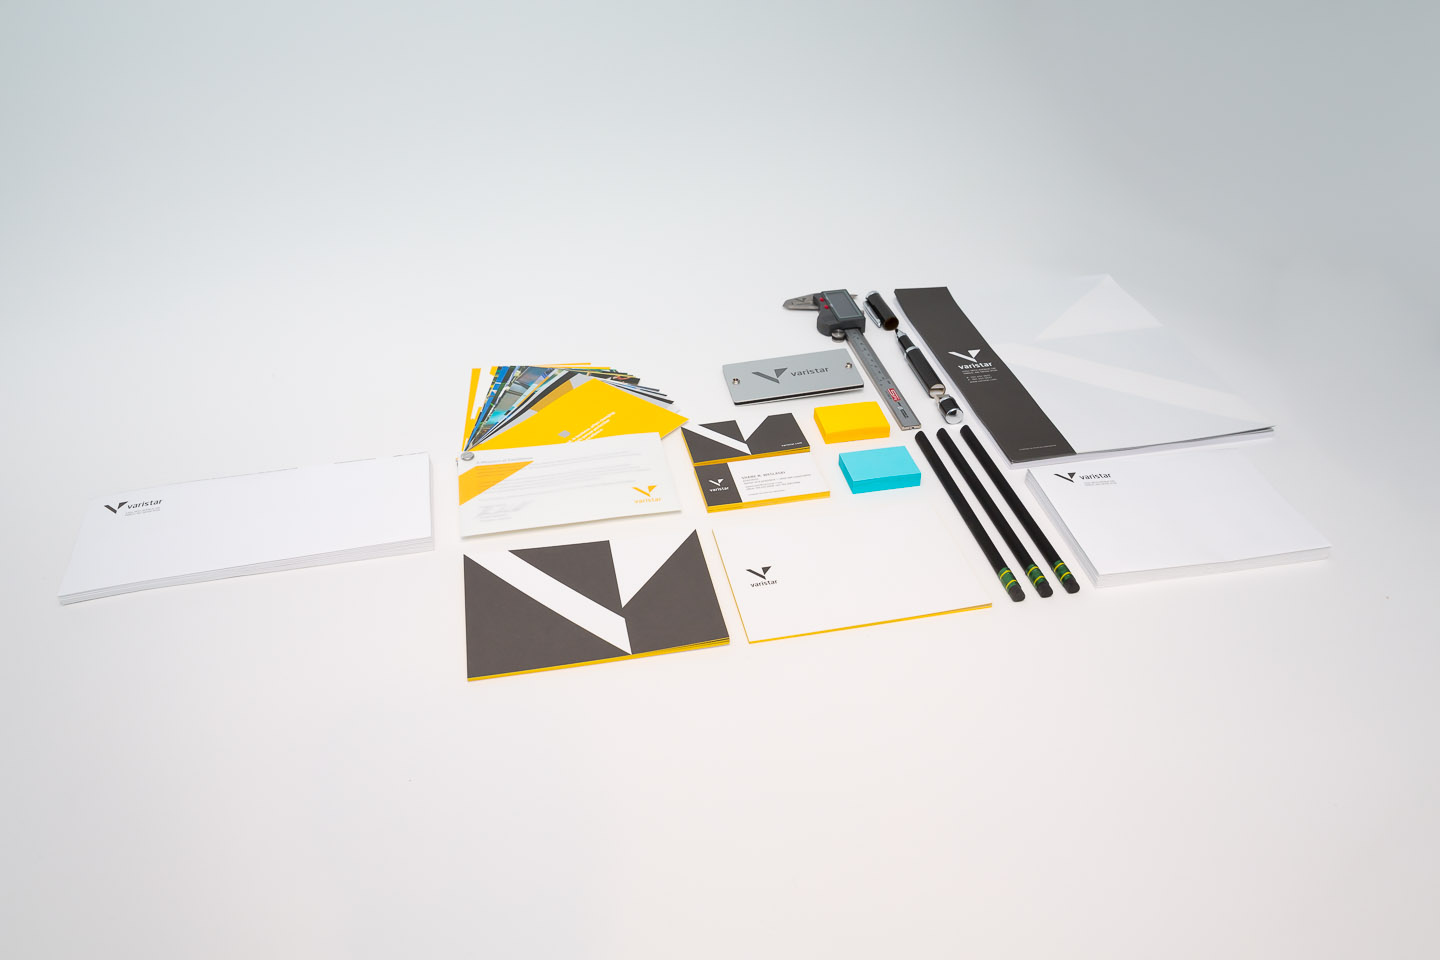 Gray, yellow, and blue letterhead, postcards, business, cards, and colored post-it notes atop a white surface